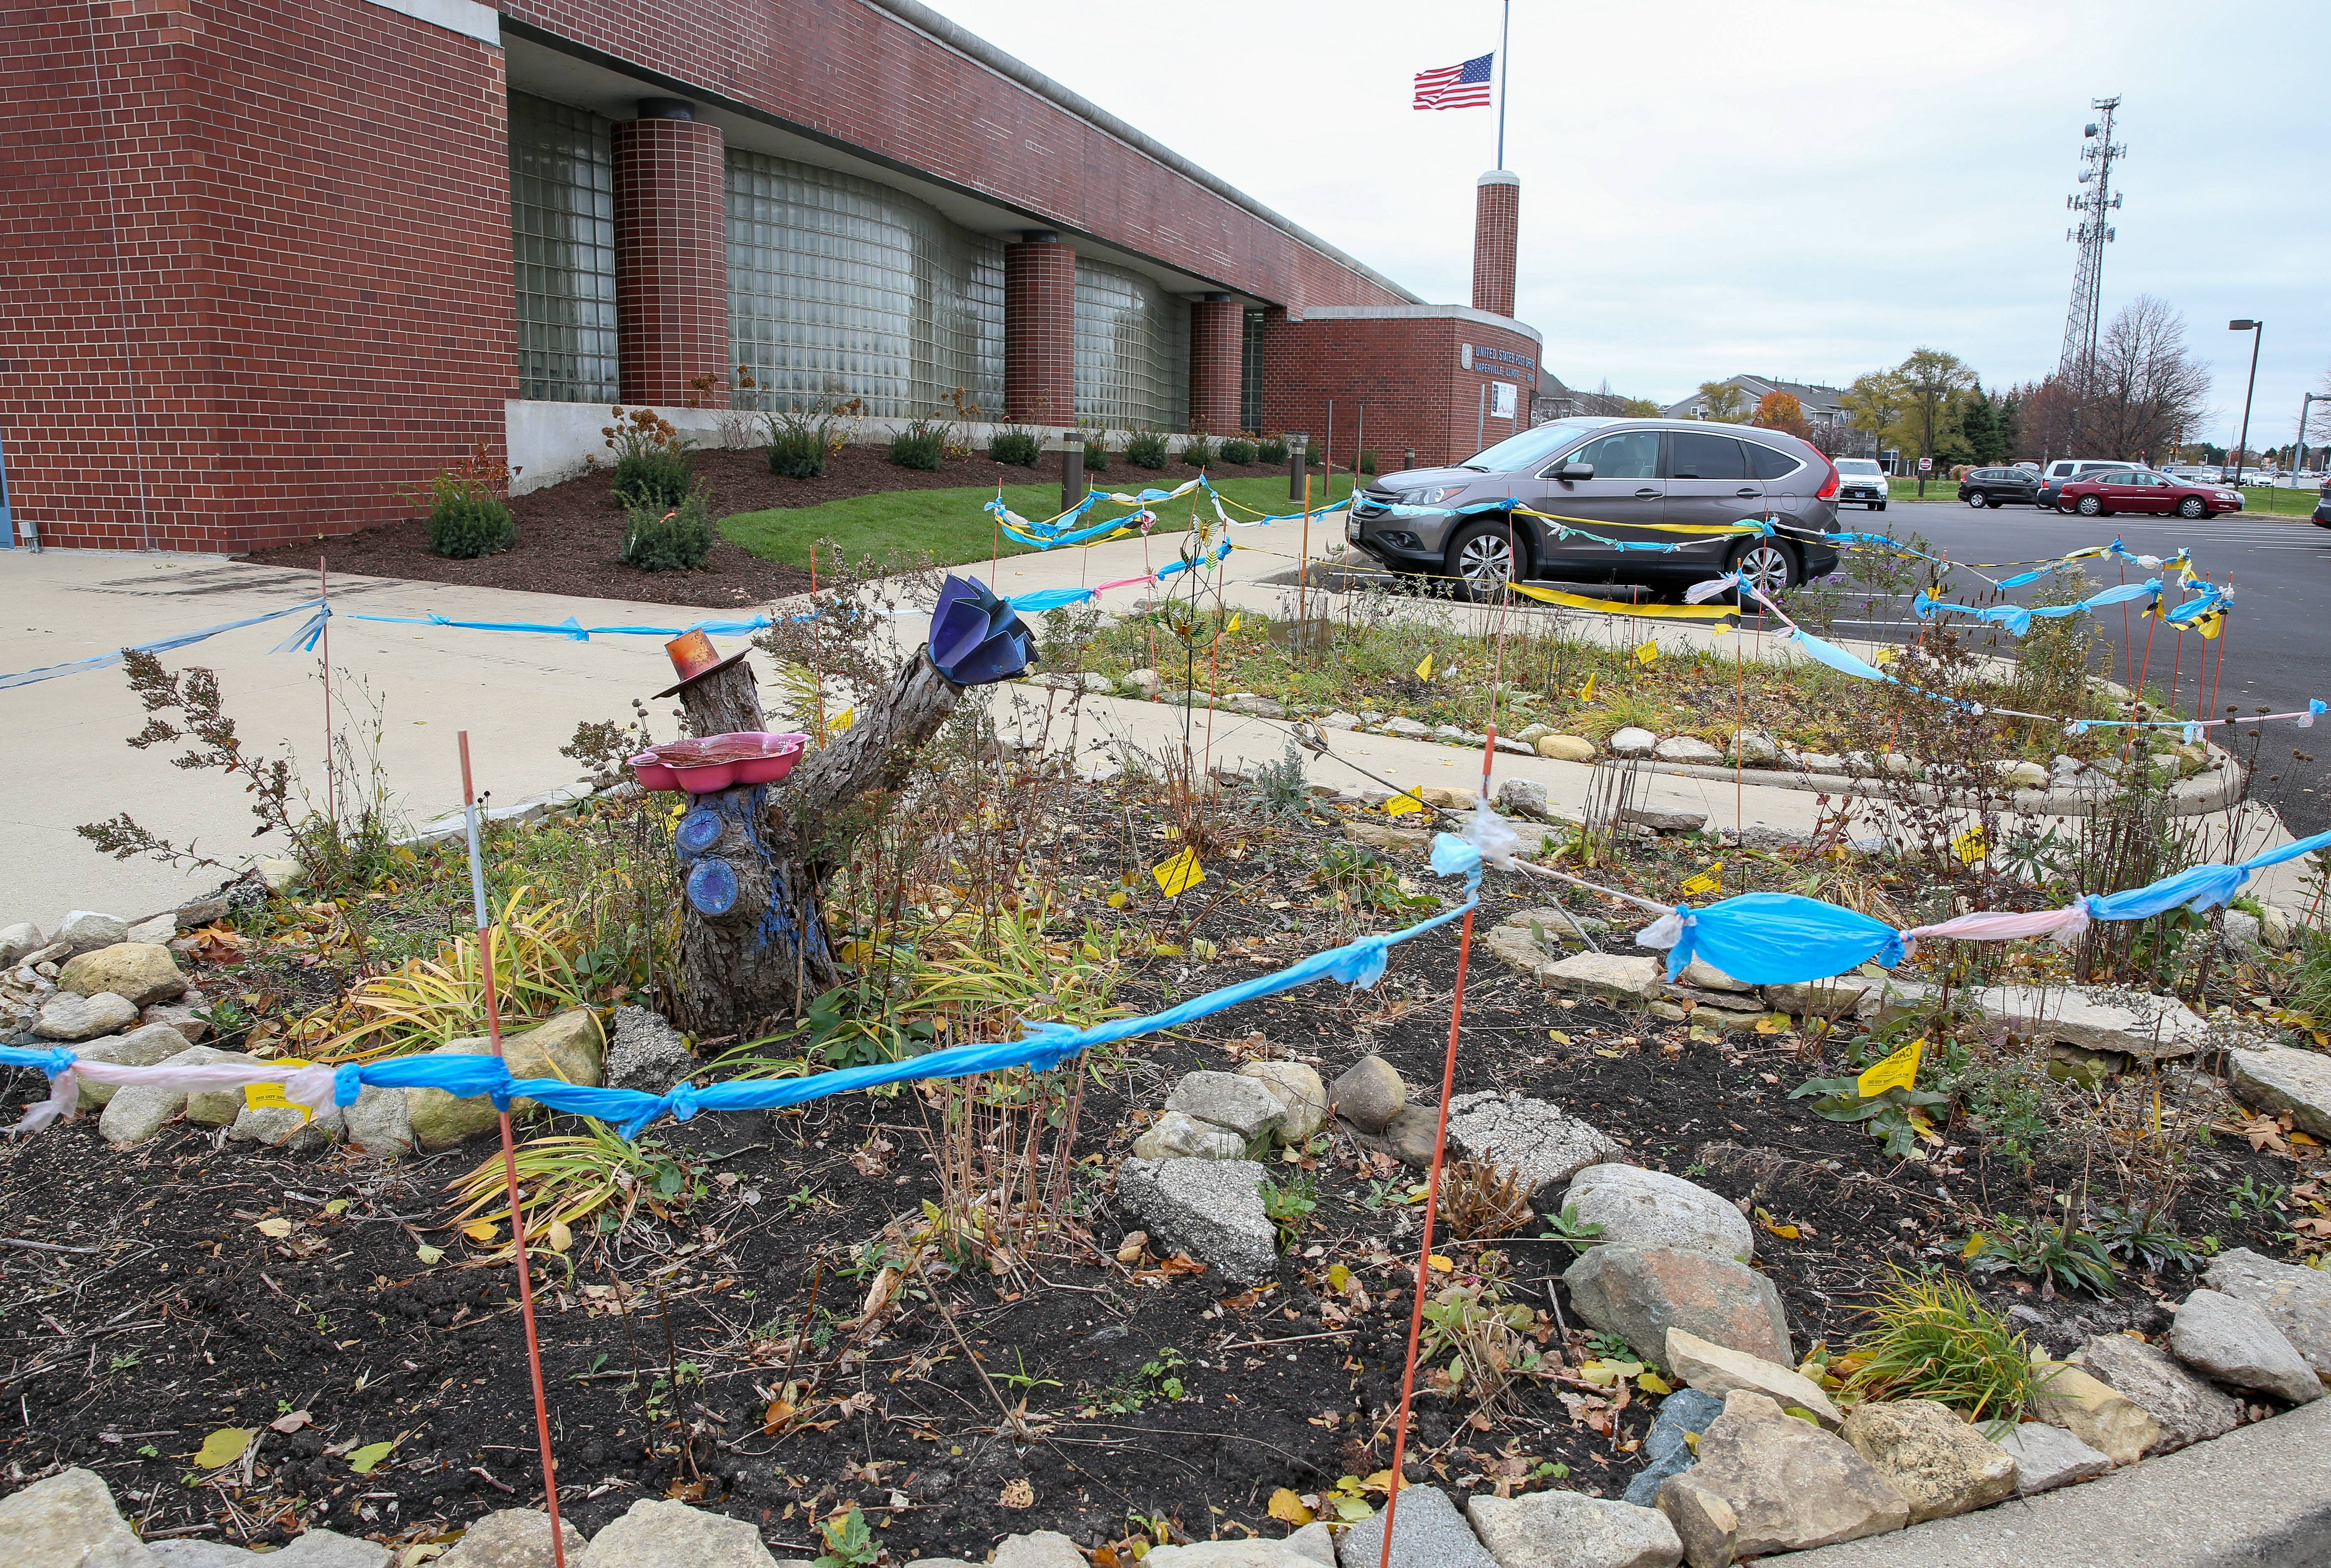 Although the U.S. Postal Service installed some new plantings near the entrance to the Naperville post office on Ogden Avenue, in the place of a former pollinator garden, two small landscaped islands in the parking lot, still contain prairie pollinator plants grown by gardener Carolyn Finzer of Naperville.